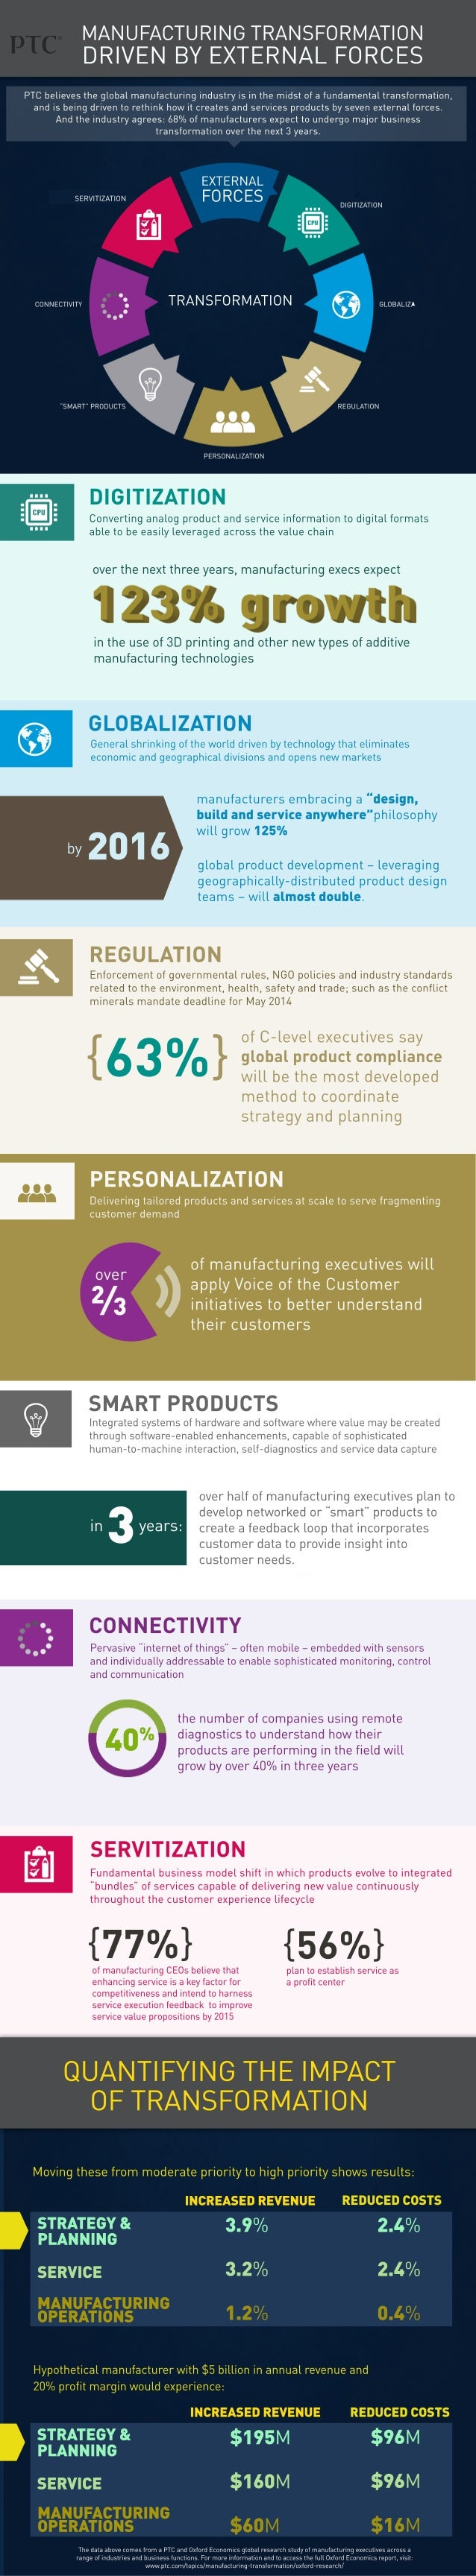 Manufacturing Transformation Driven by External Forces [Infographic]